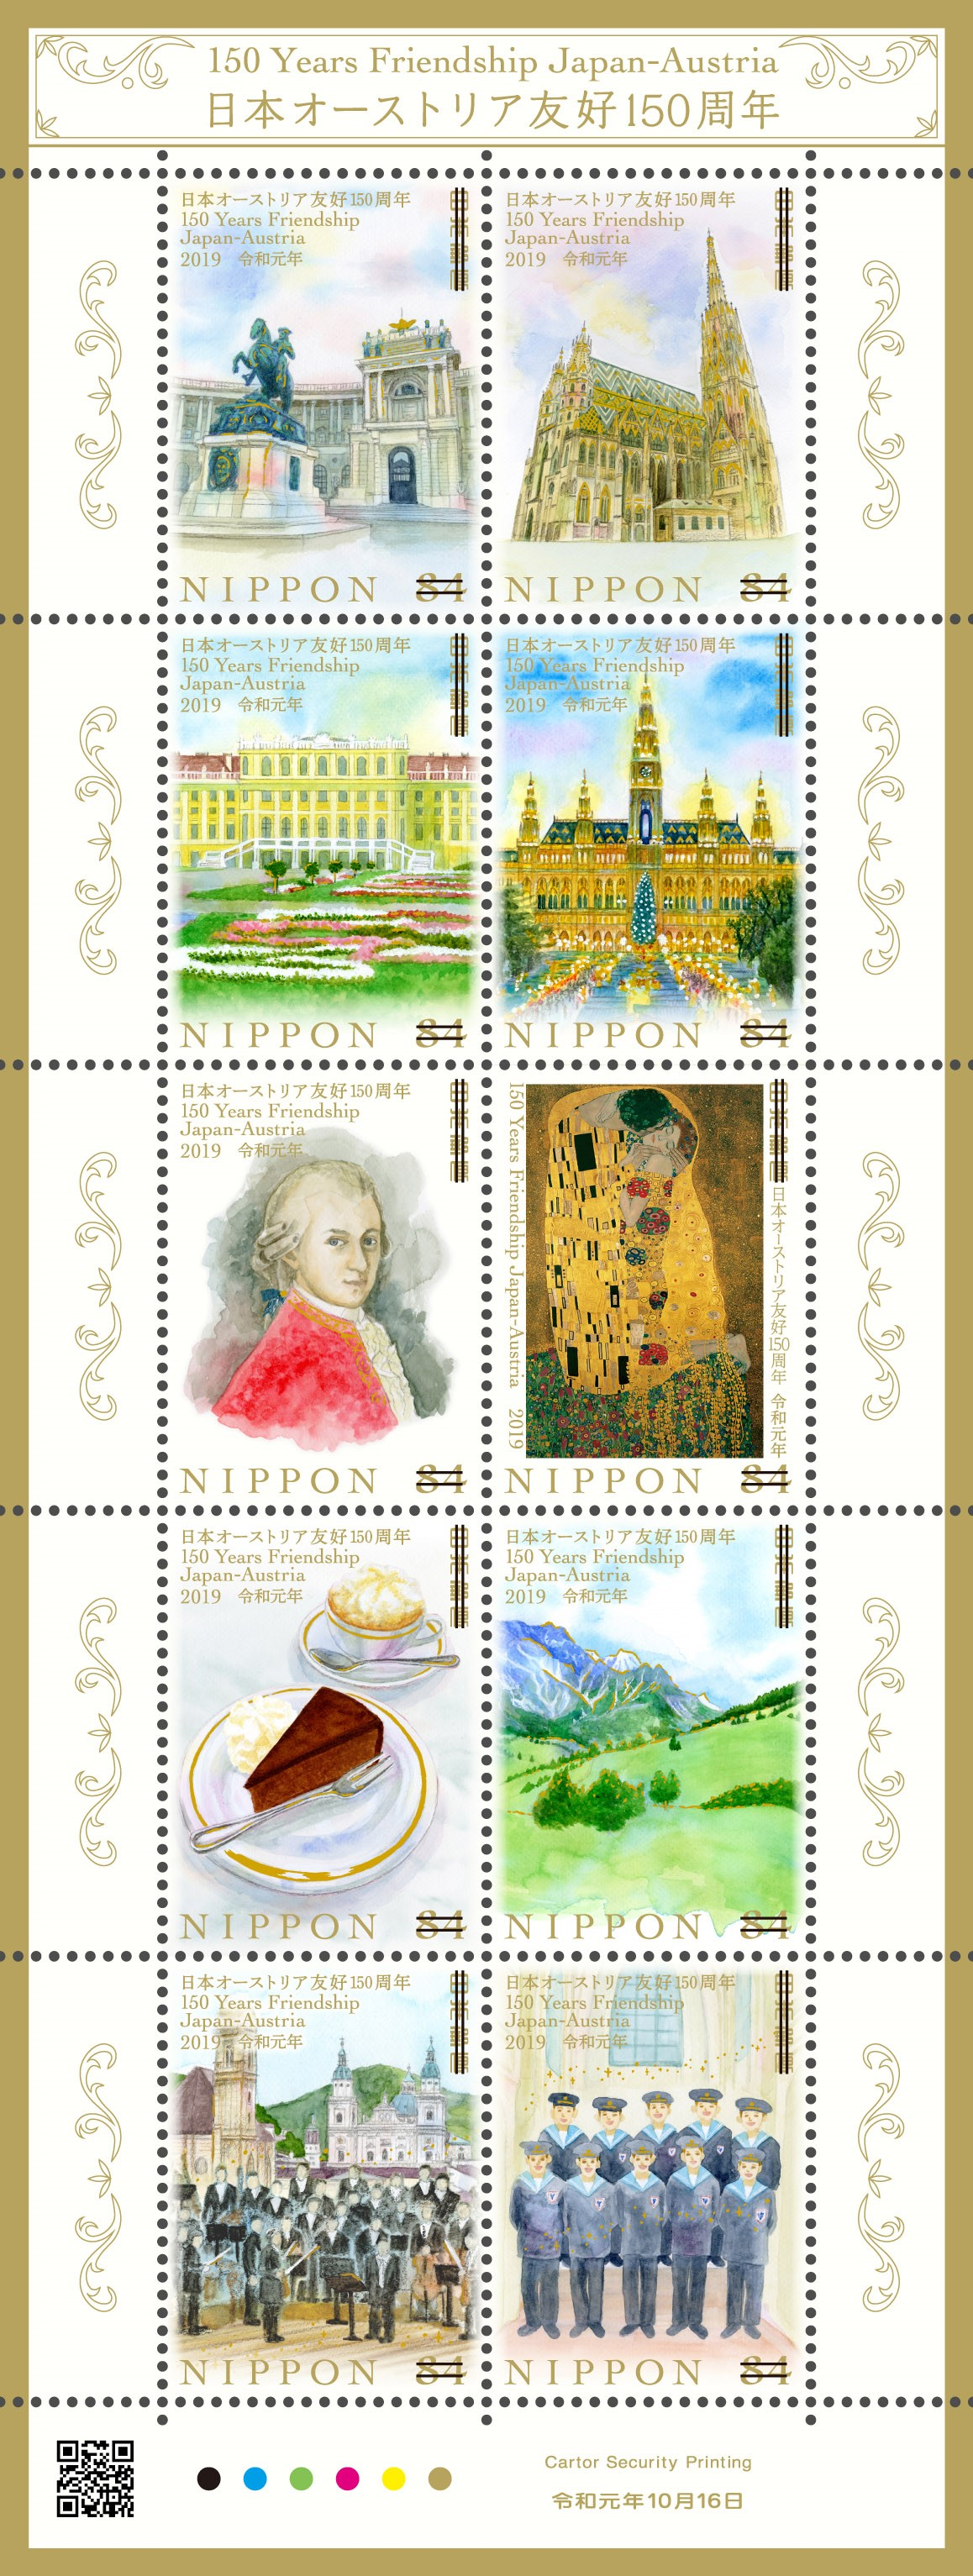 Japan - Austria 150 Year Friendship Stamps.